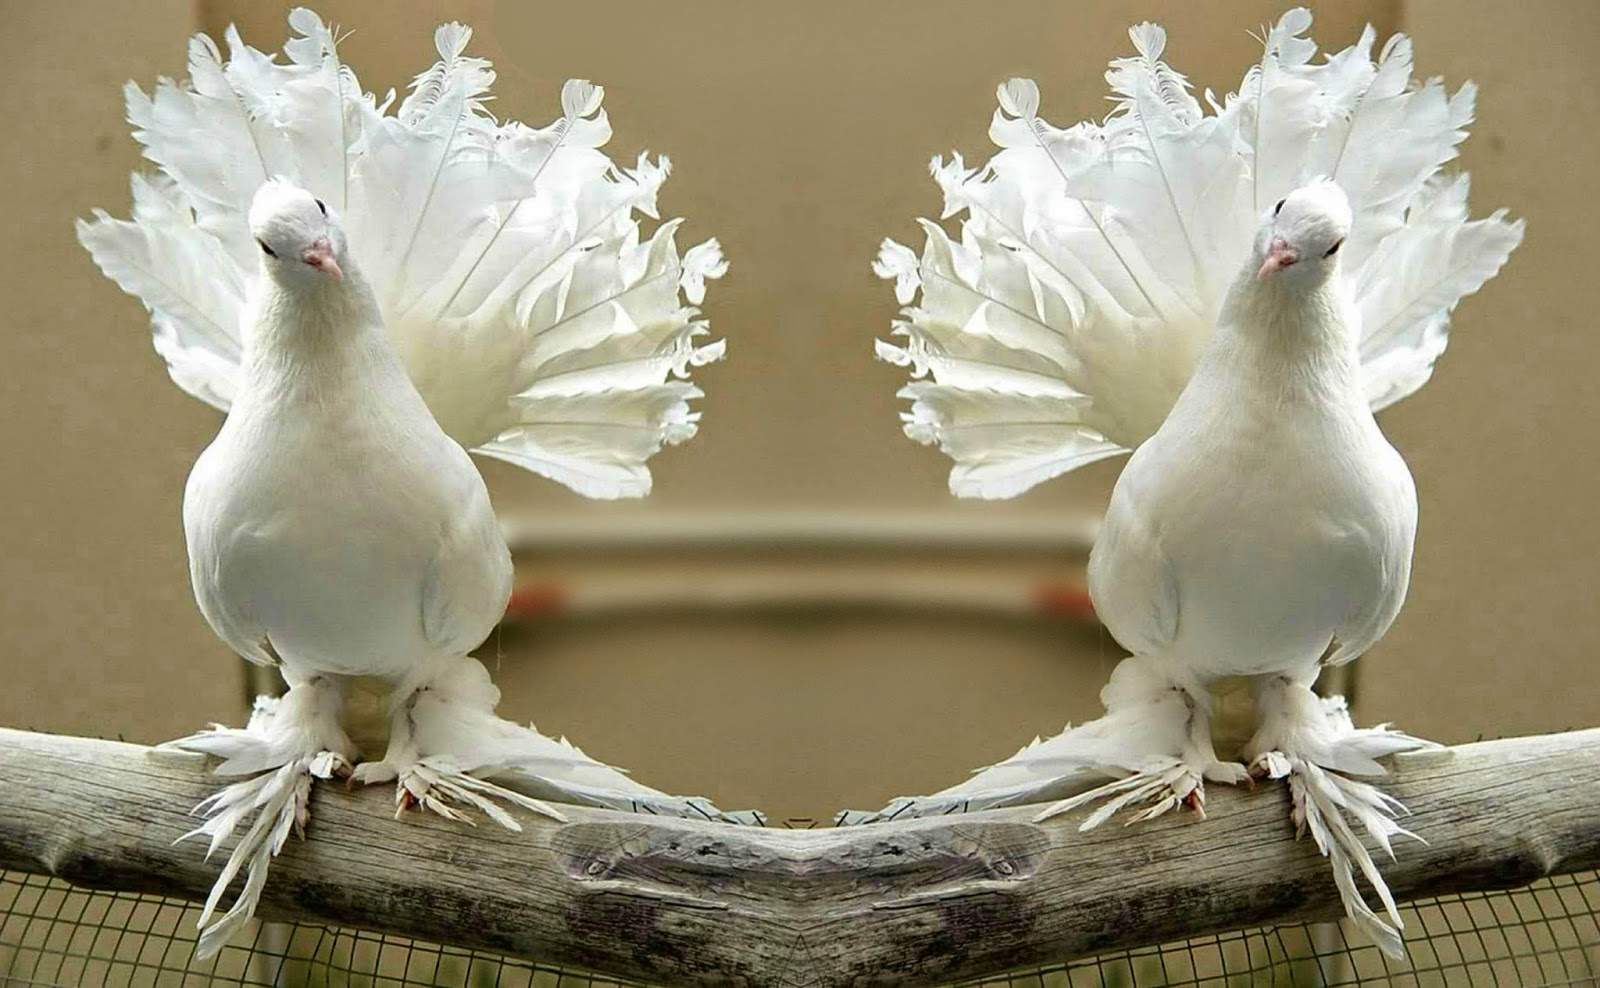 the racing pigeon hd wallpaper: pigeon